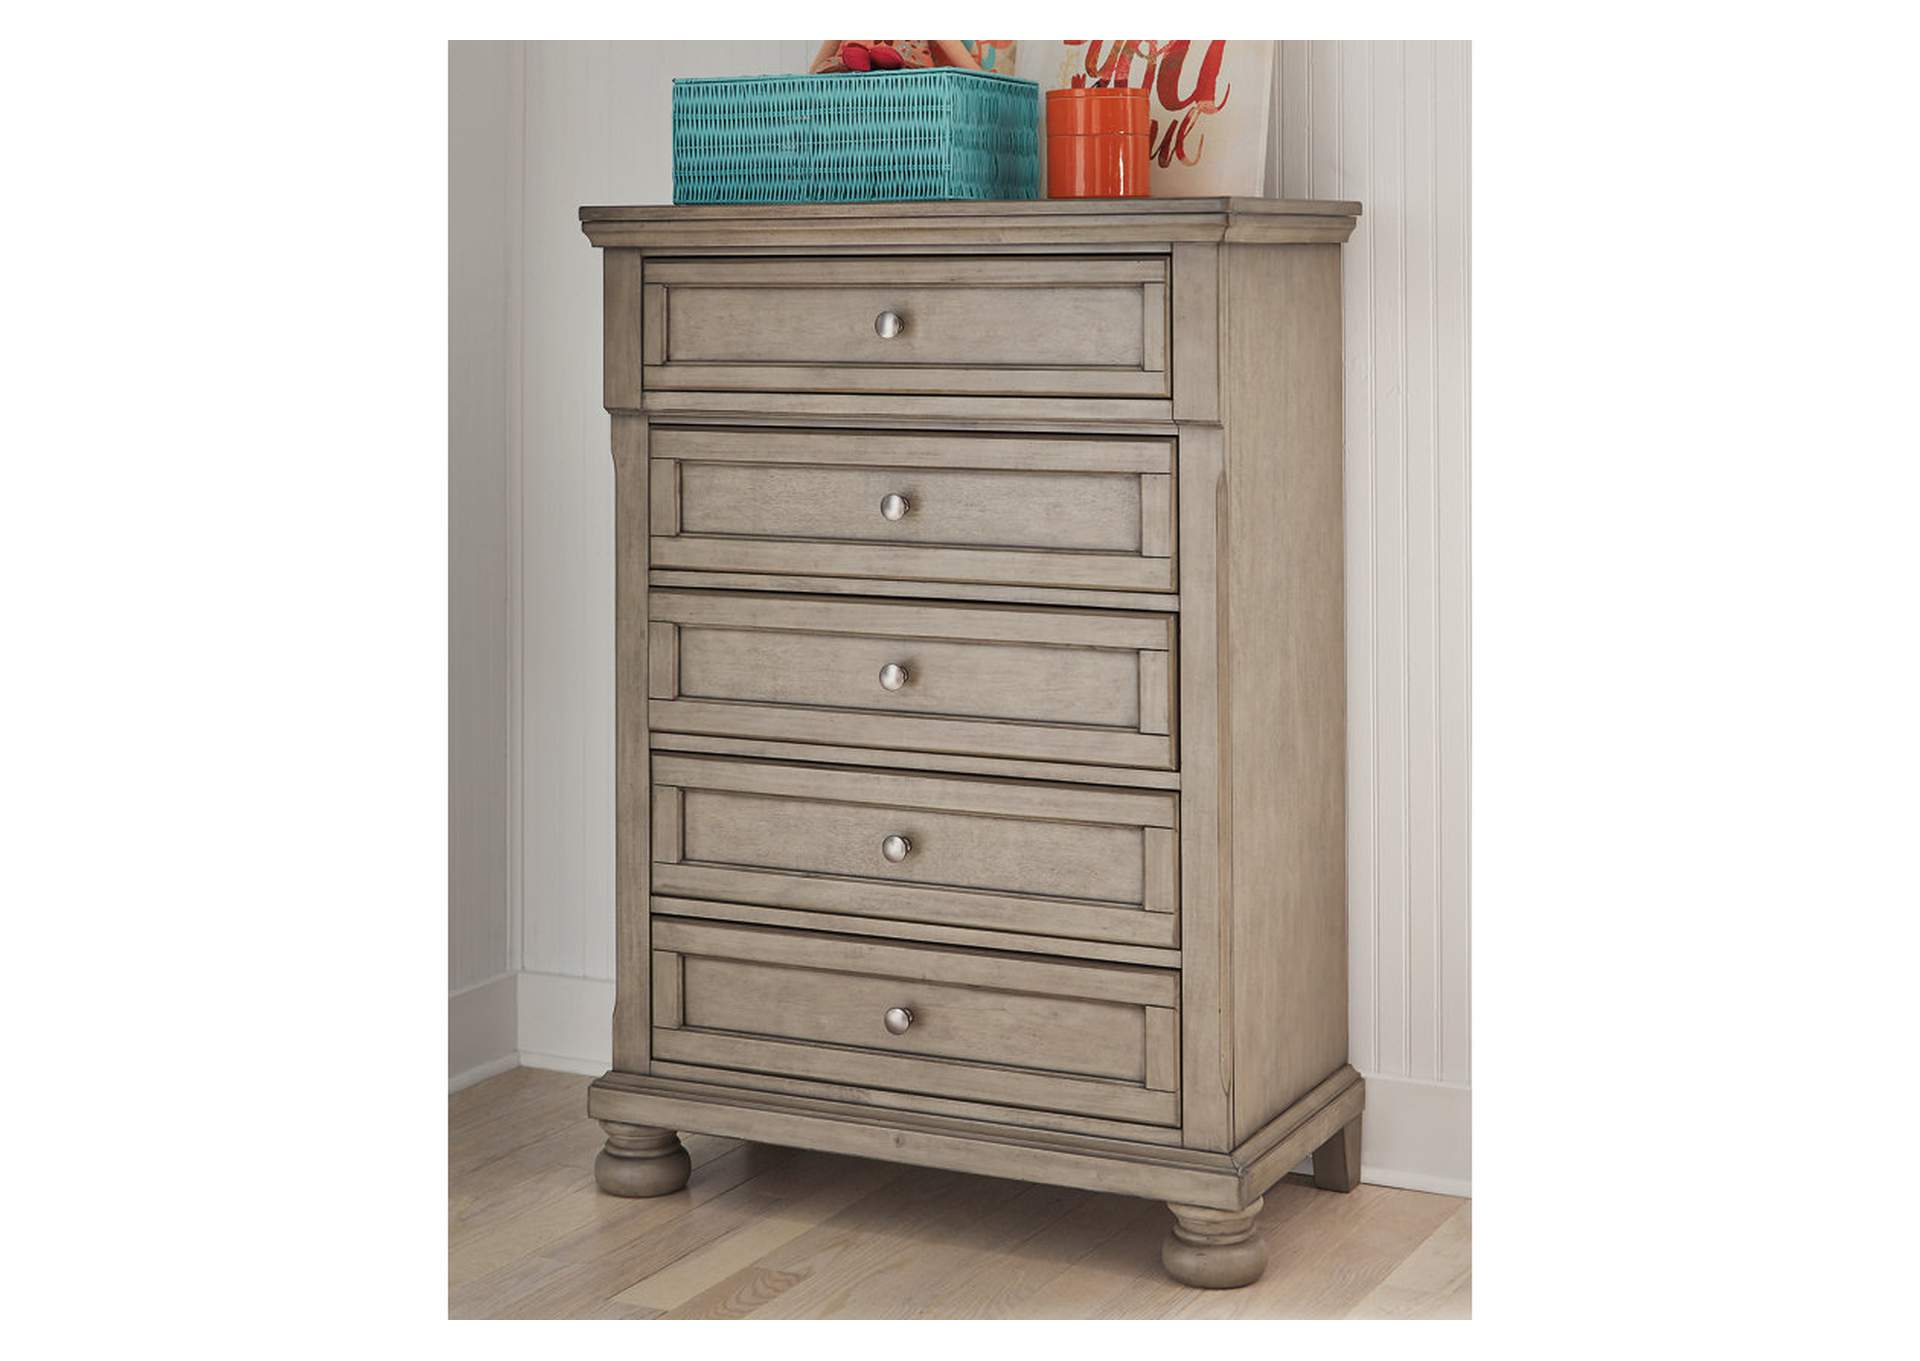 Lettner Light Gray Chest of Drawers,Signature Design By Ashley